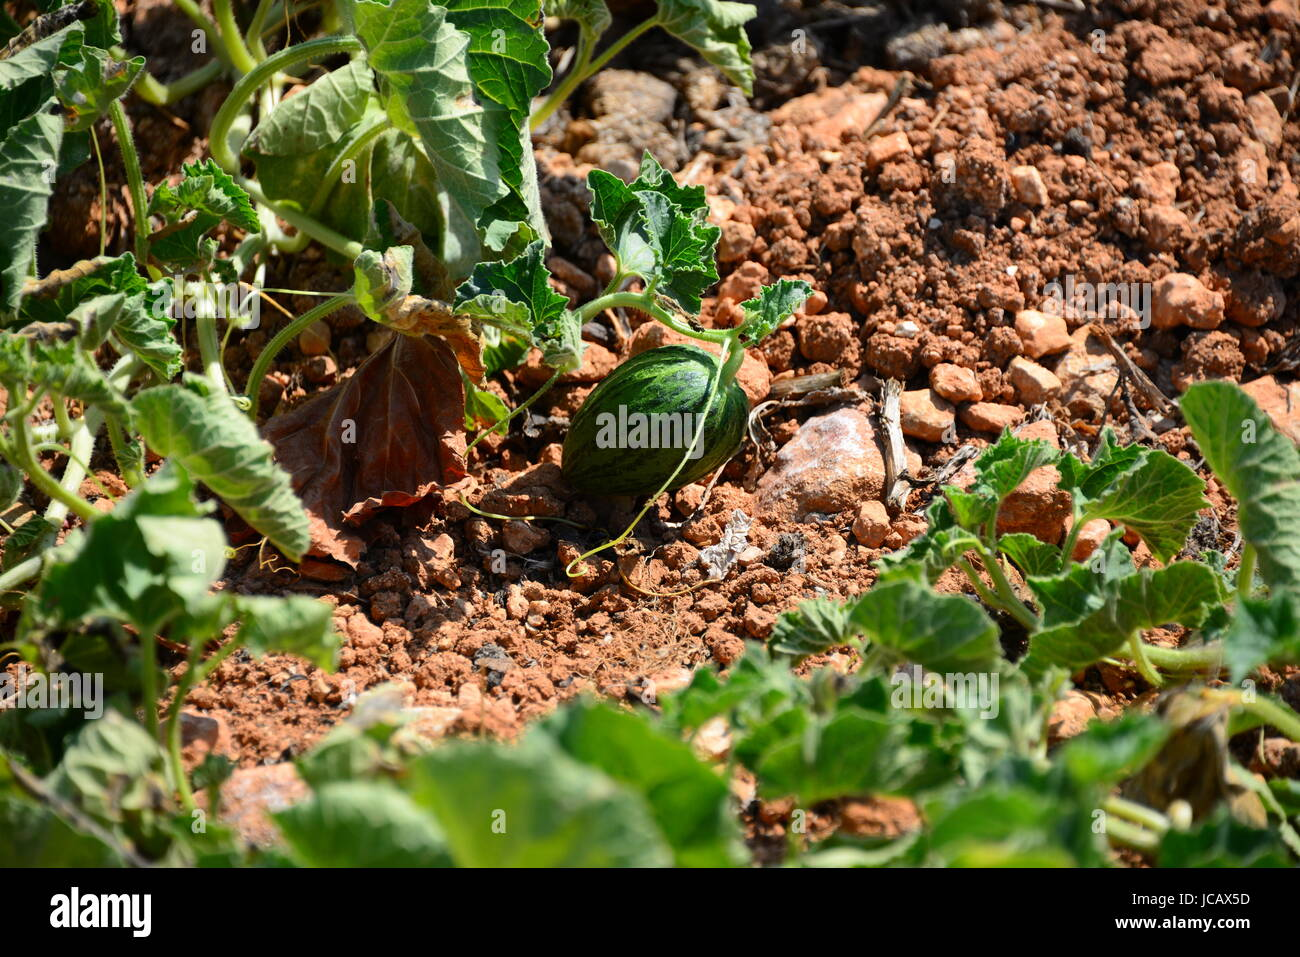 melons on the field - spain Stock Photo